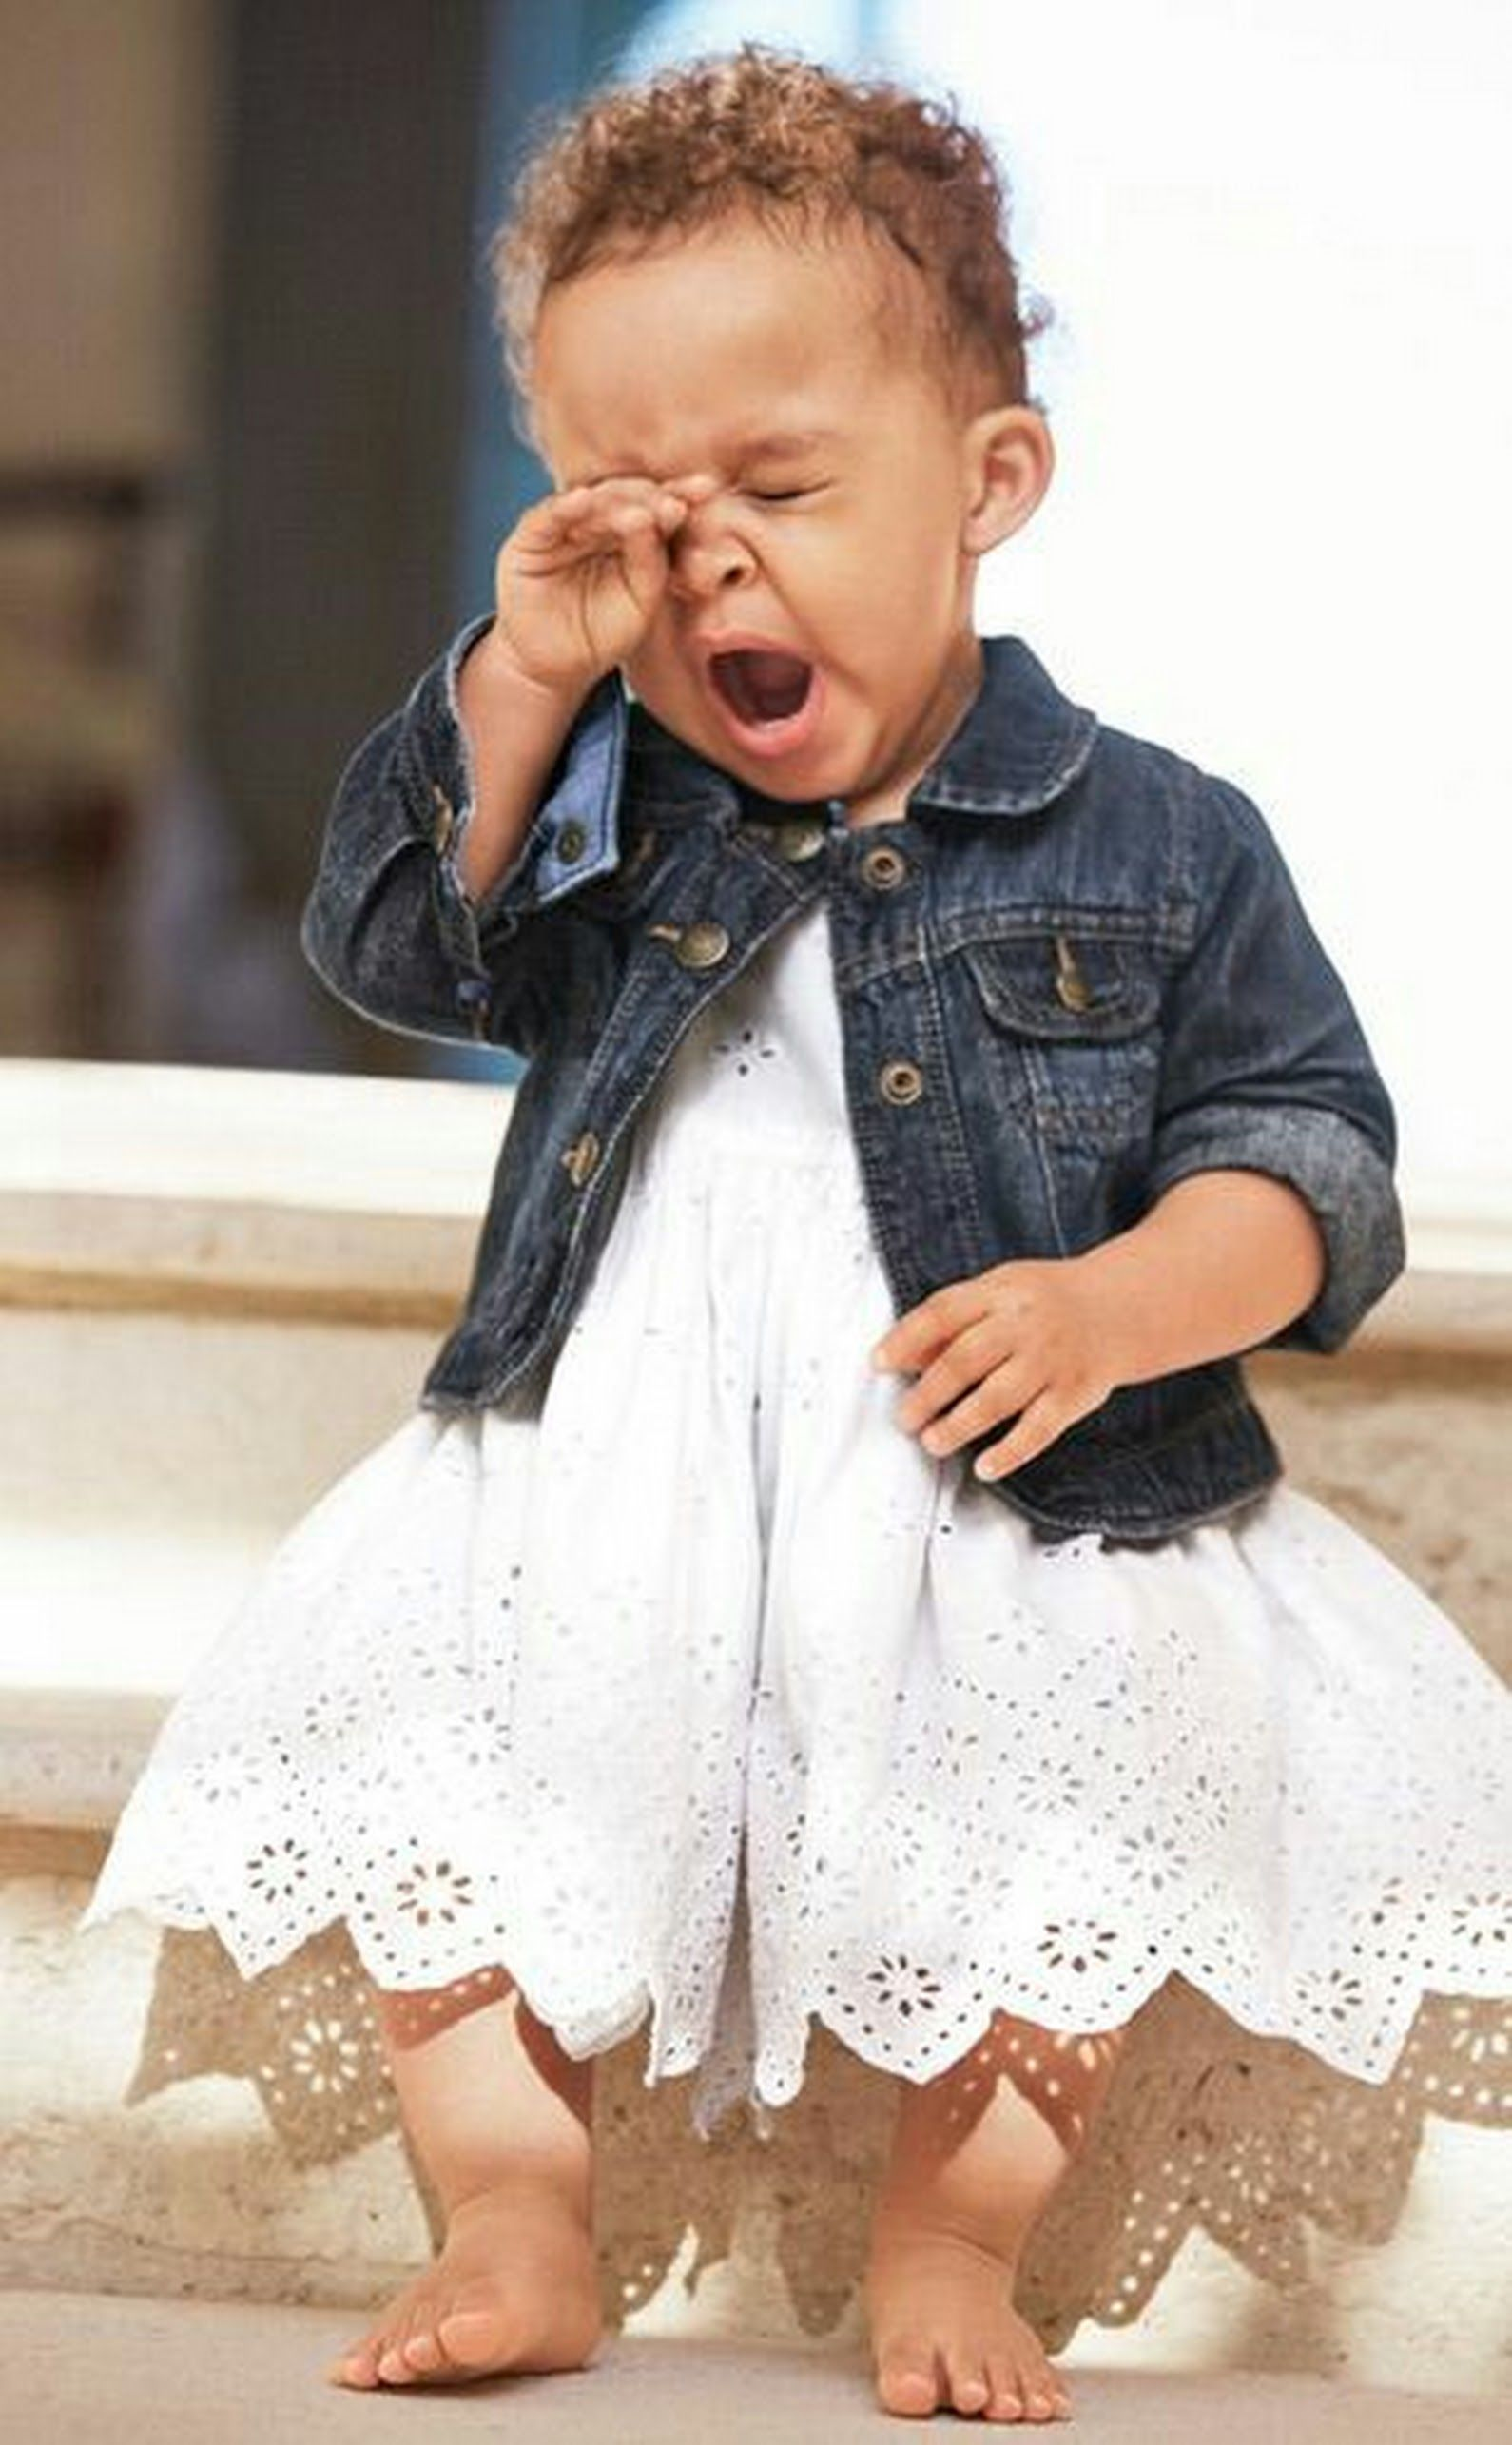 Pin by birgit kerinn on kids pinterest child babies and baby fever